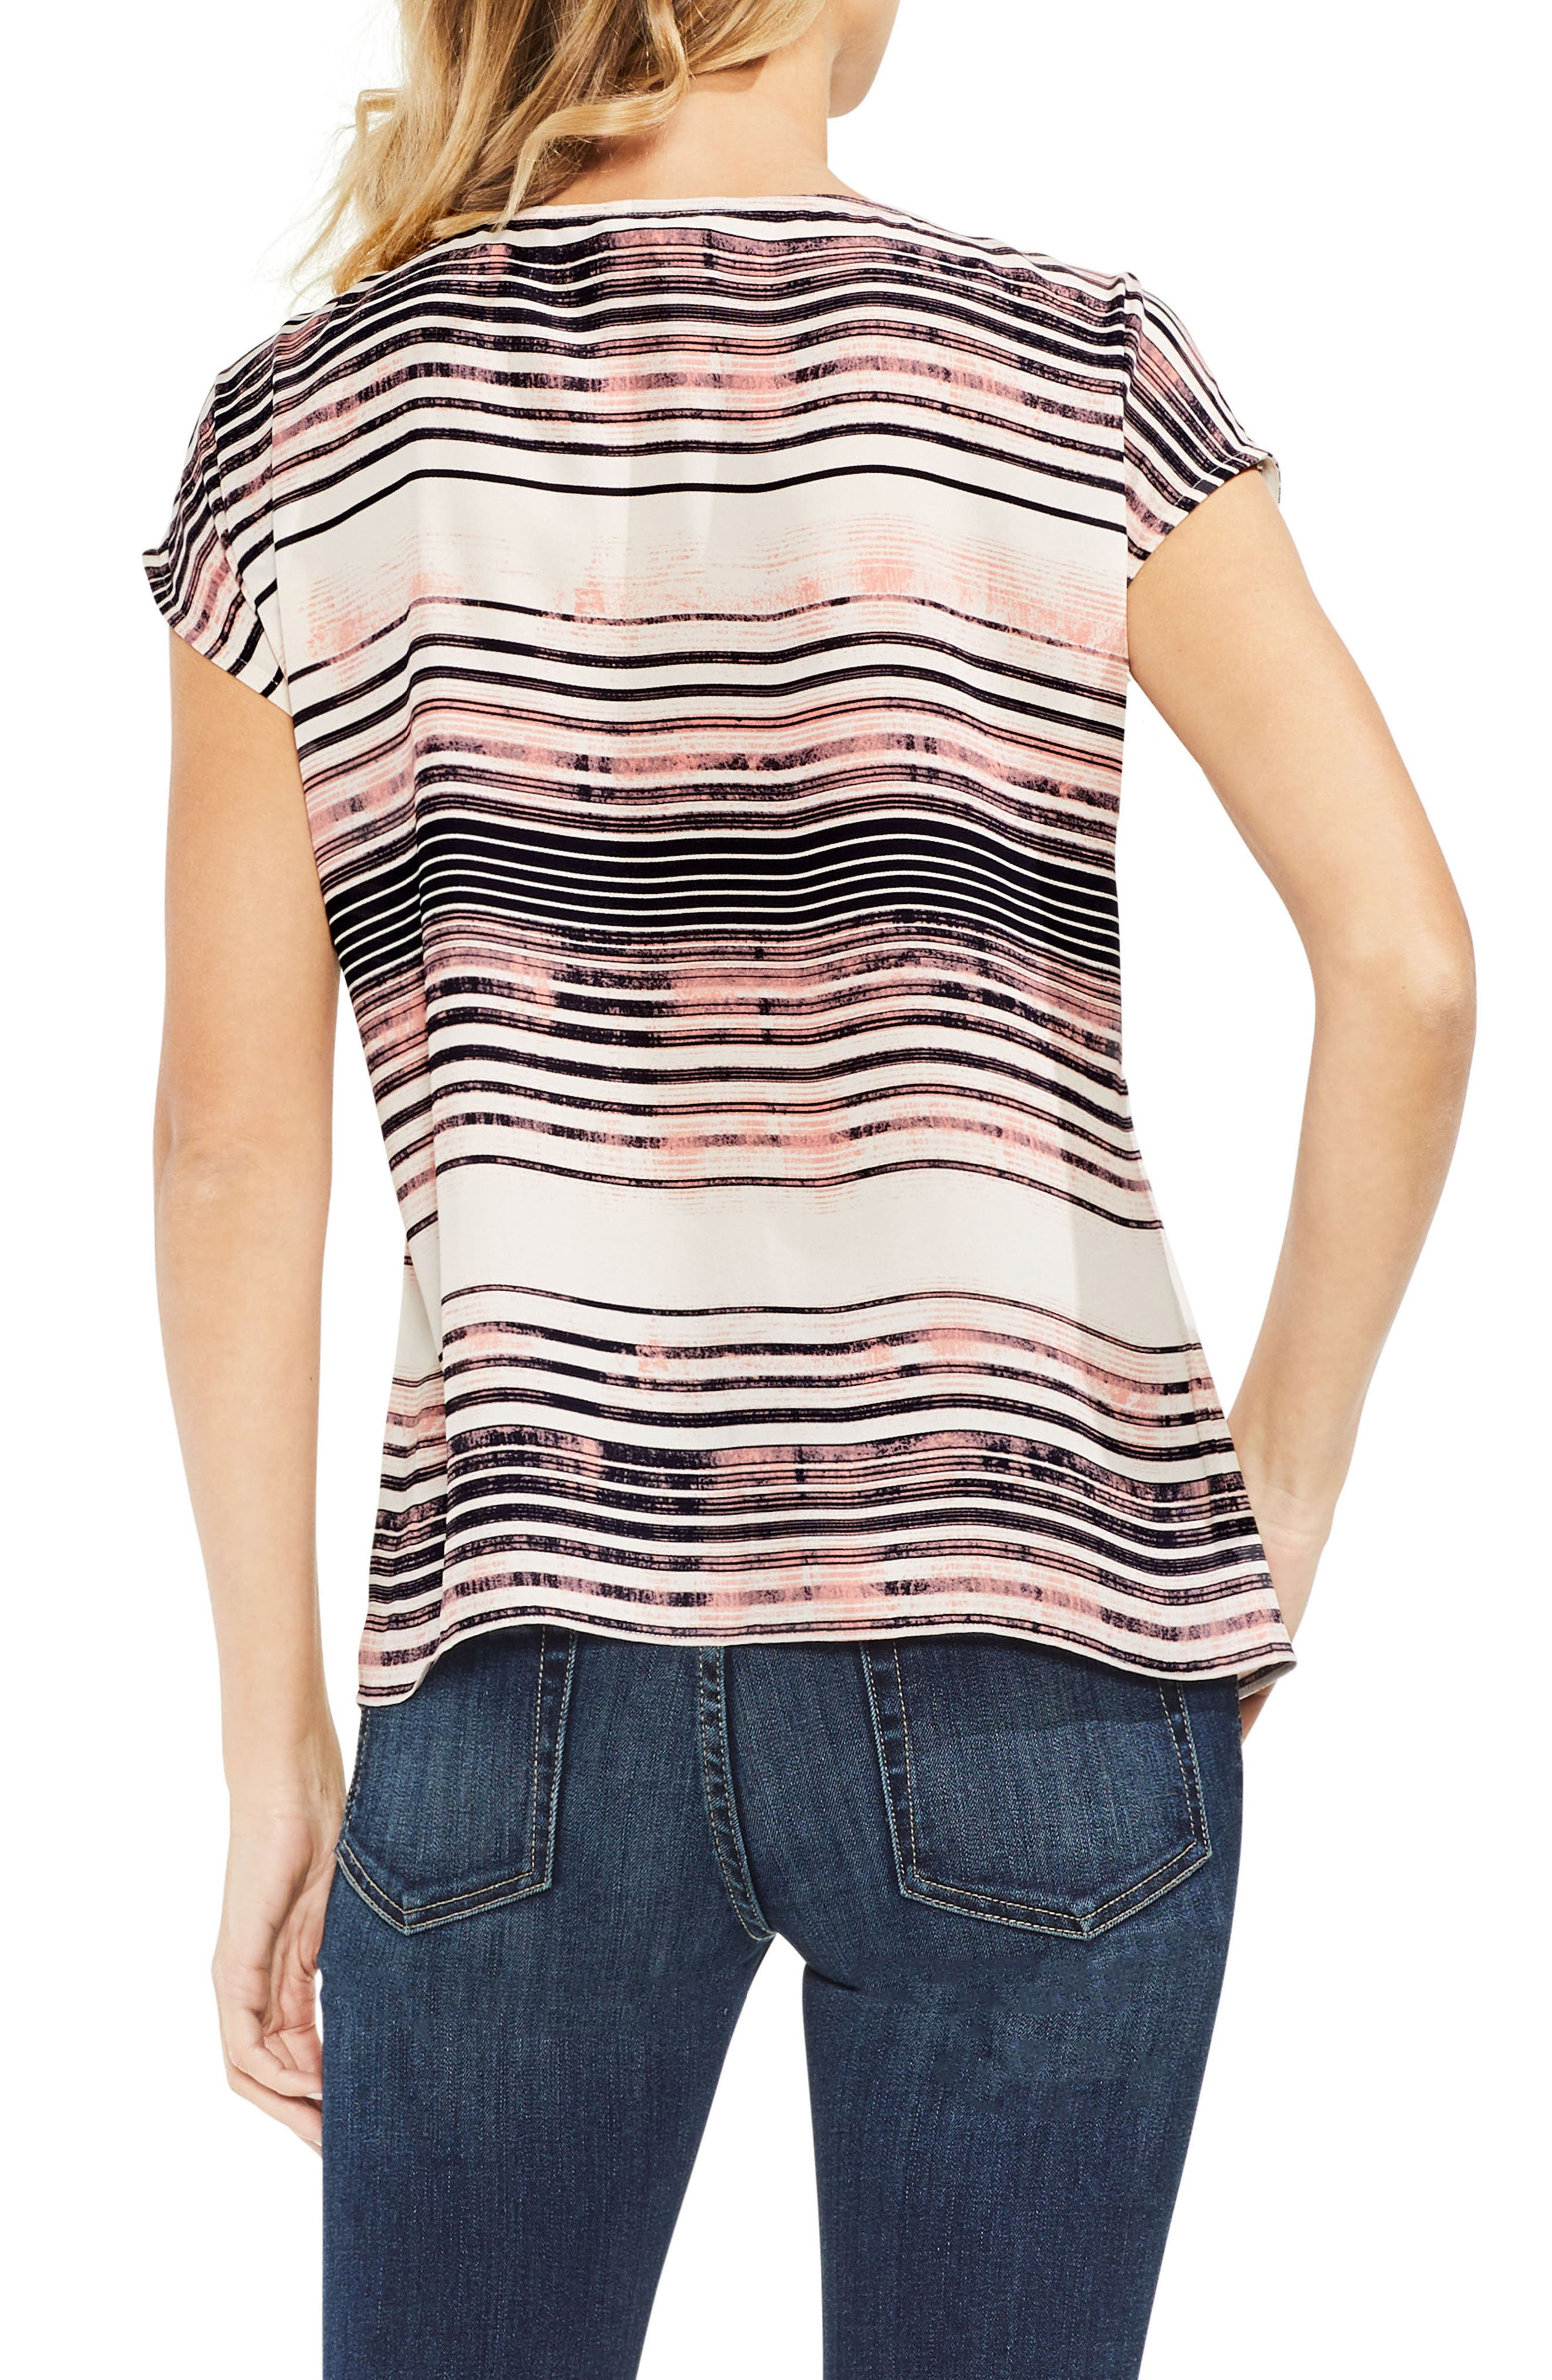 Ancient Muses Stripe Top,                             Alternate thumbnail 2, color,                             900